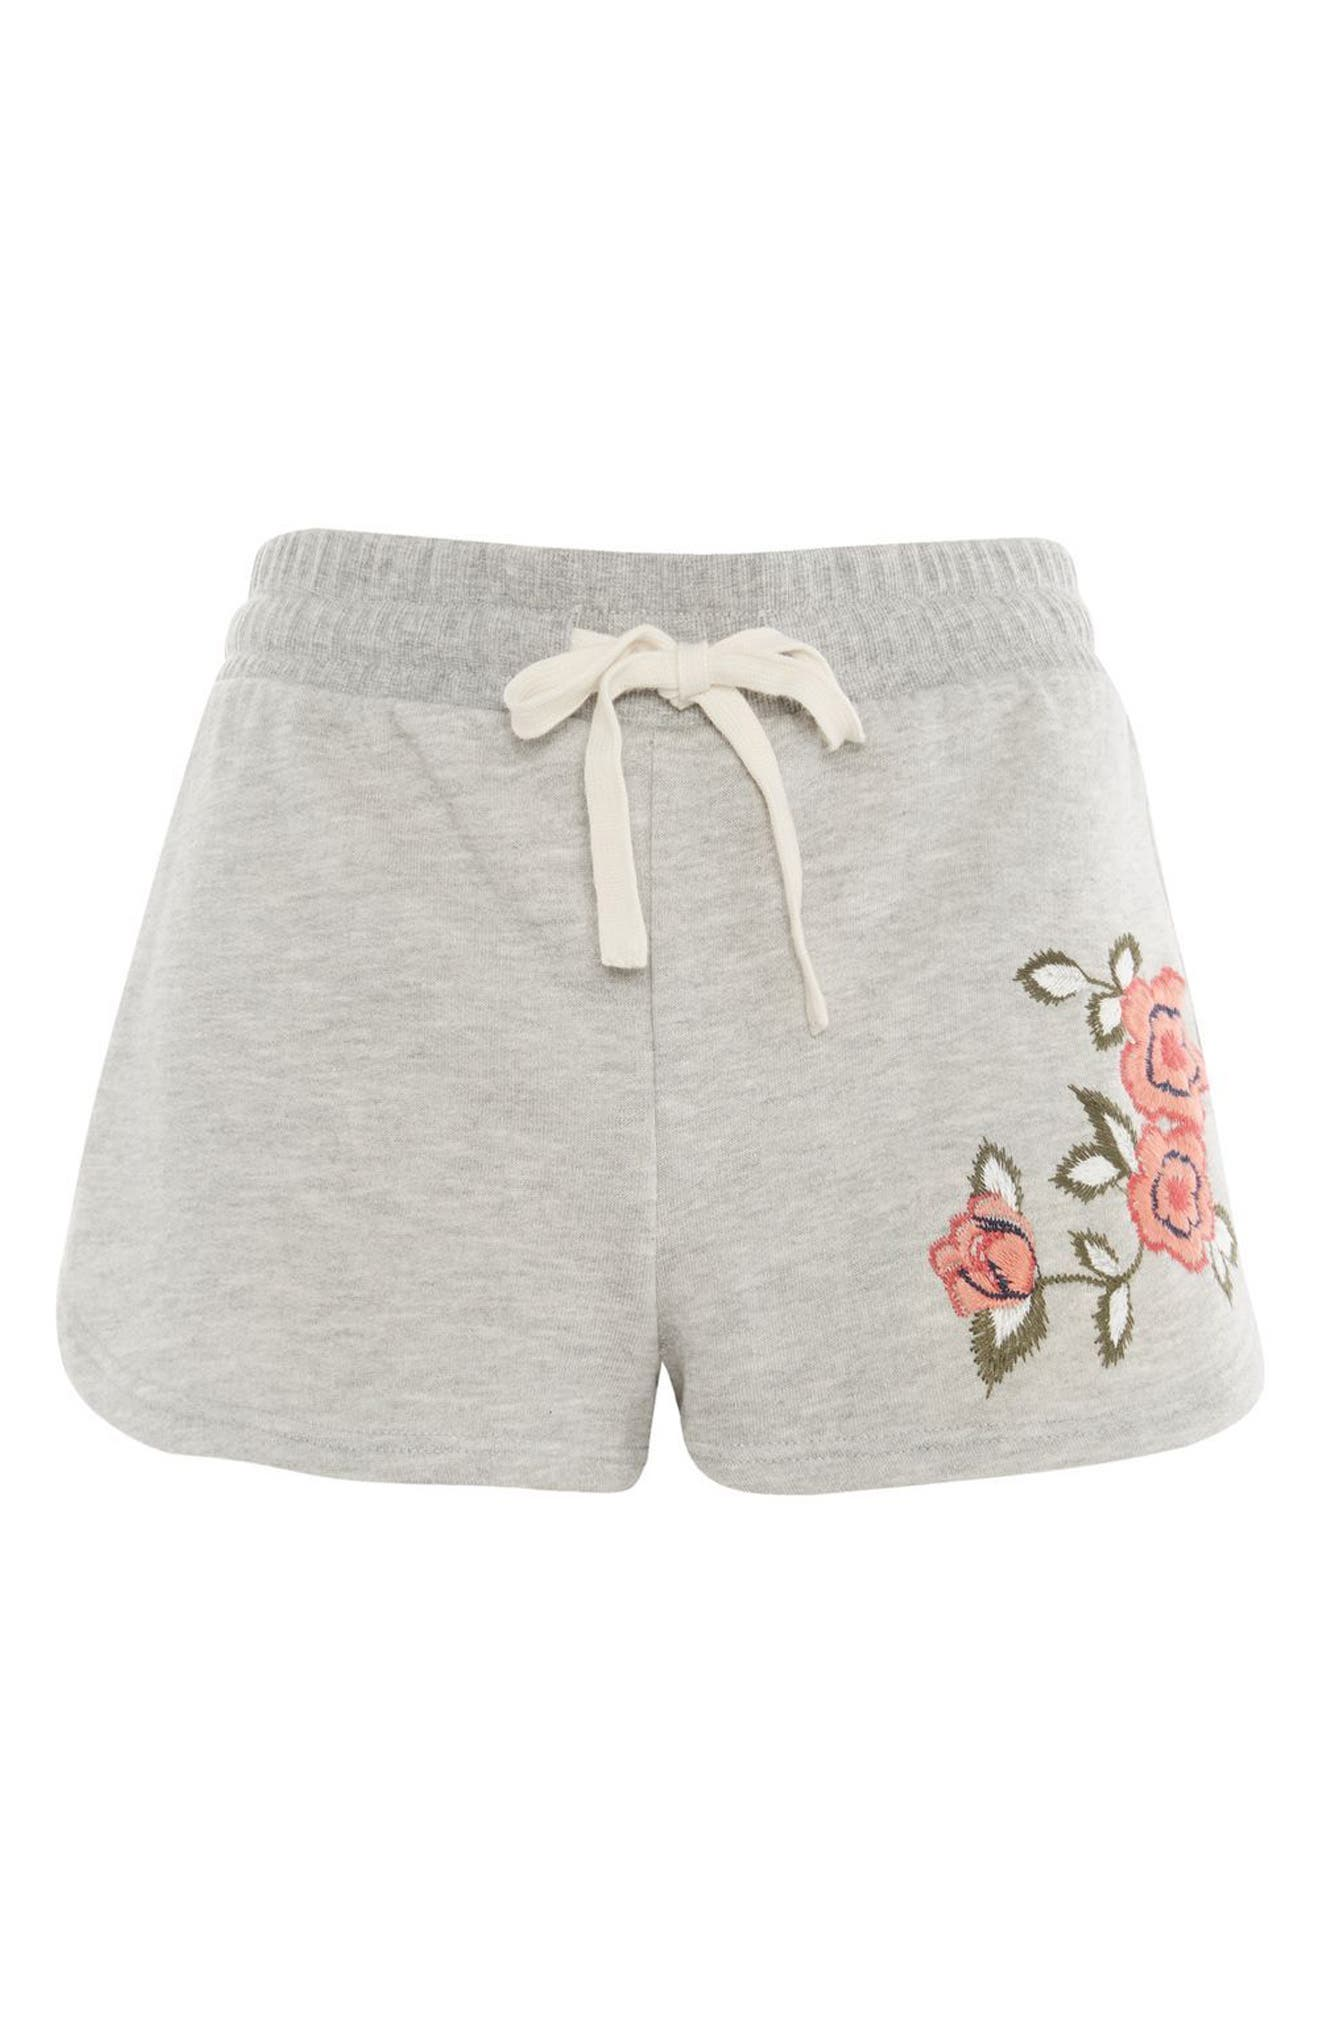 Alternate Image 1 Selected - Topshop Floral Embroidered Lounge Shorts